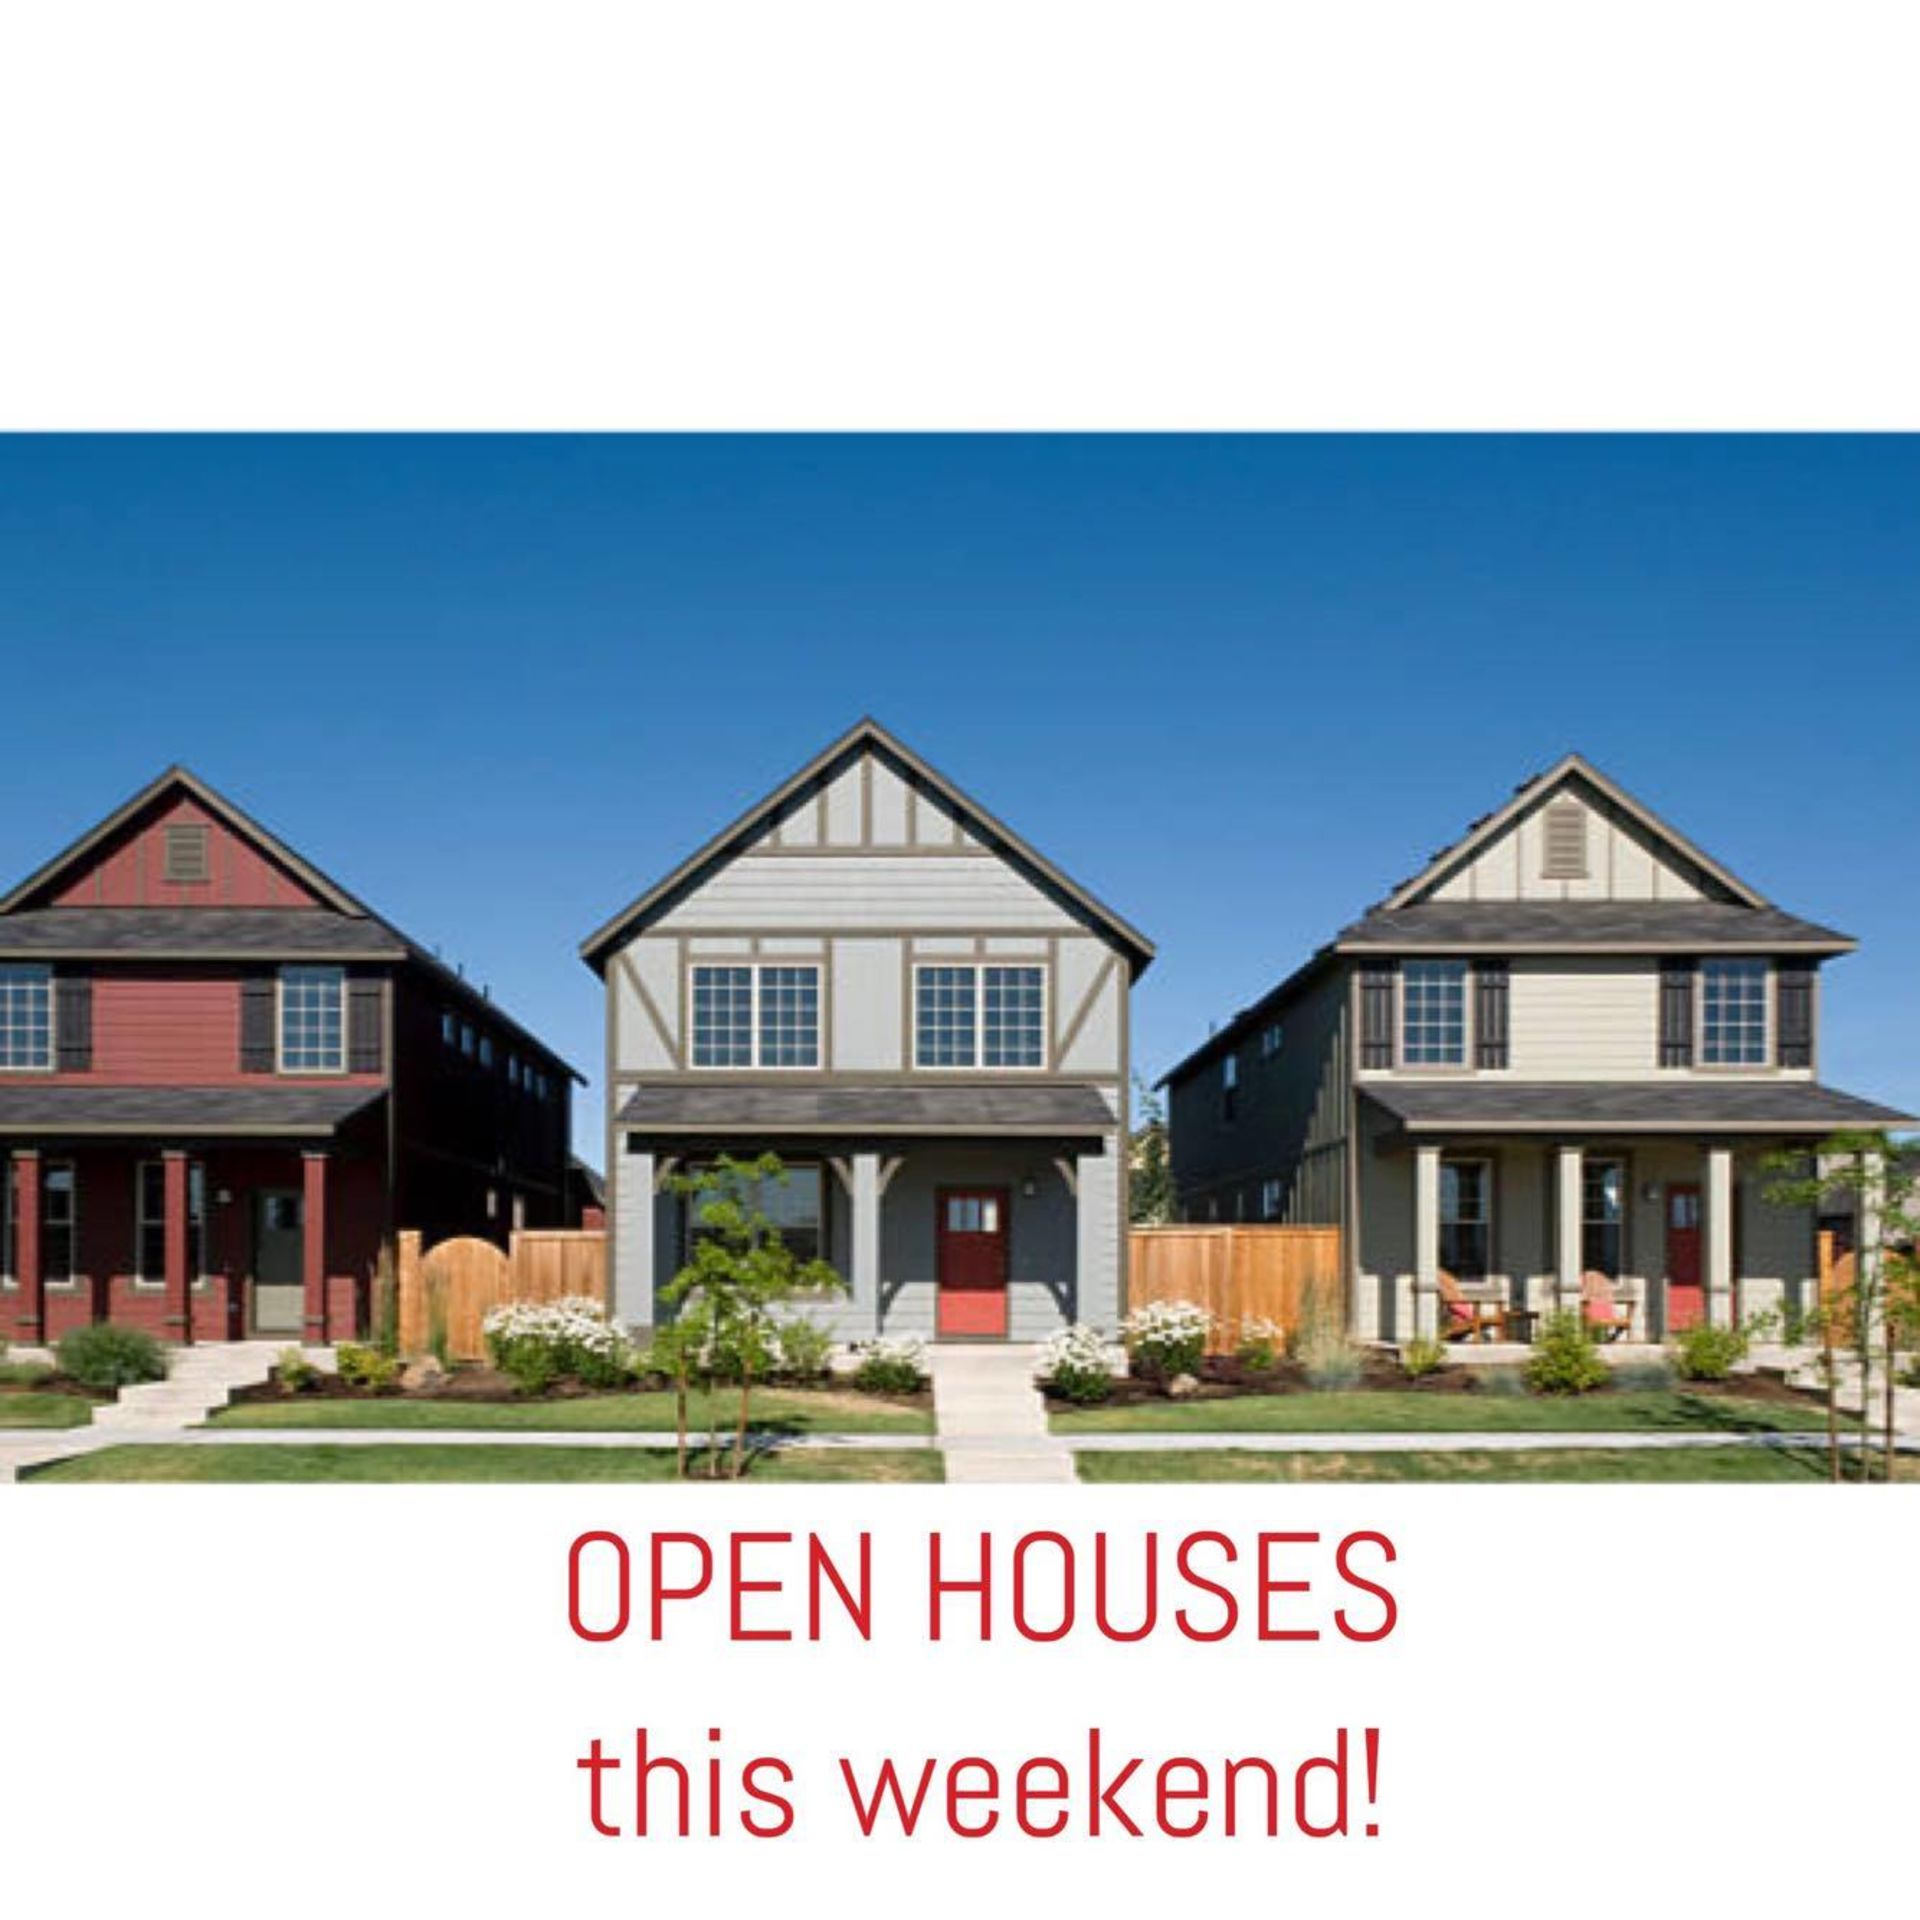 Open Houses this weekend (Feb 24/25)